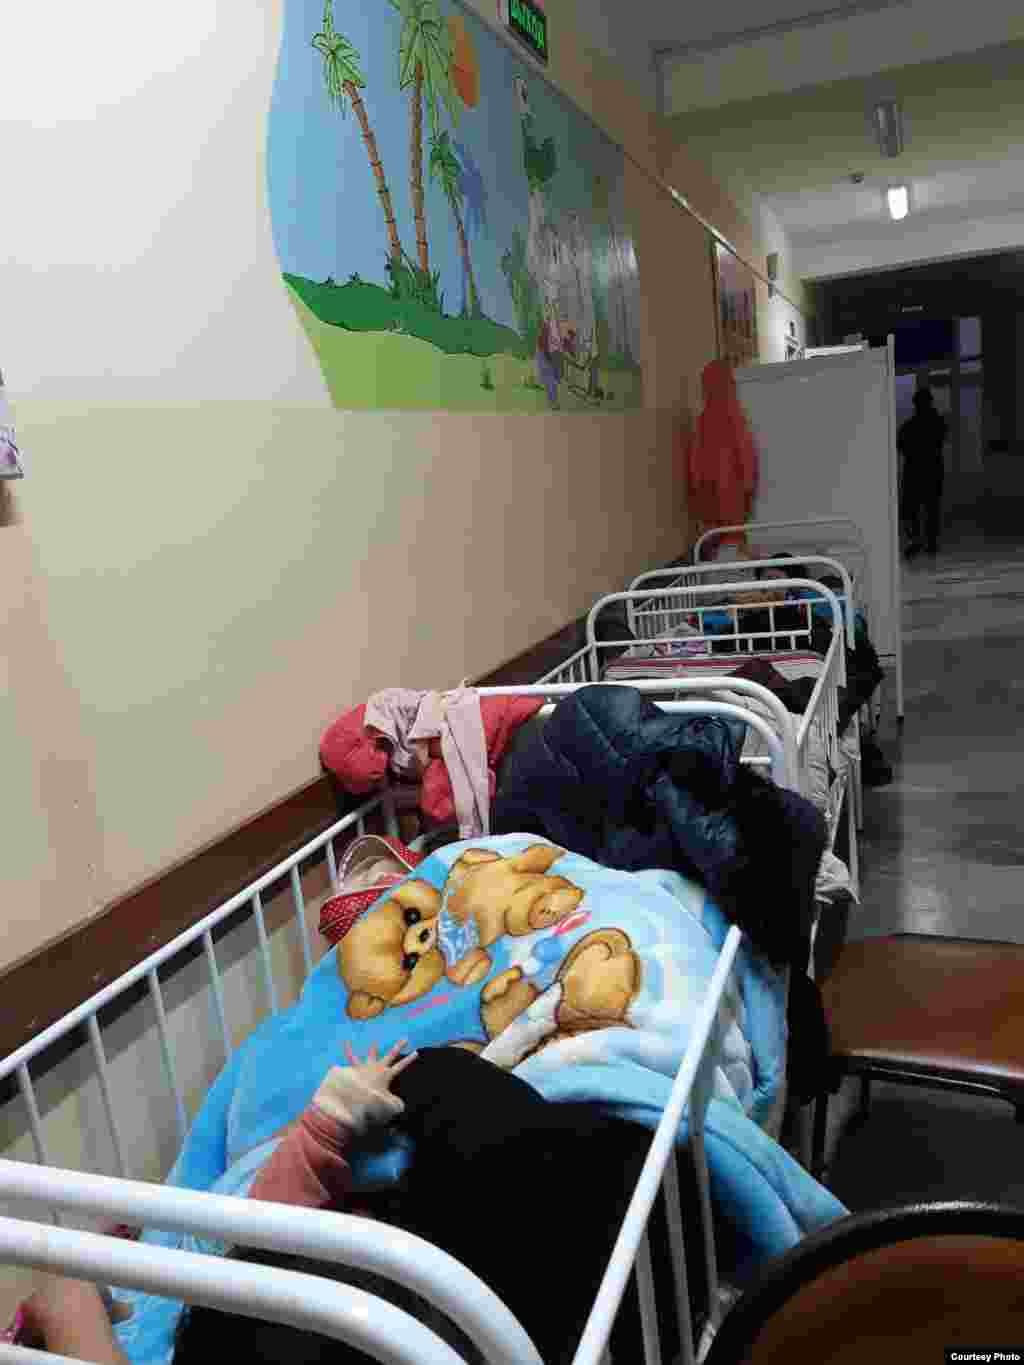 Uzbekistan - There is not enough room for sick children in Tashkent hospitals.